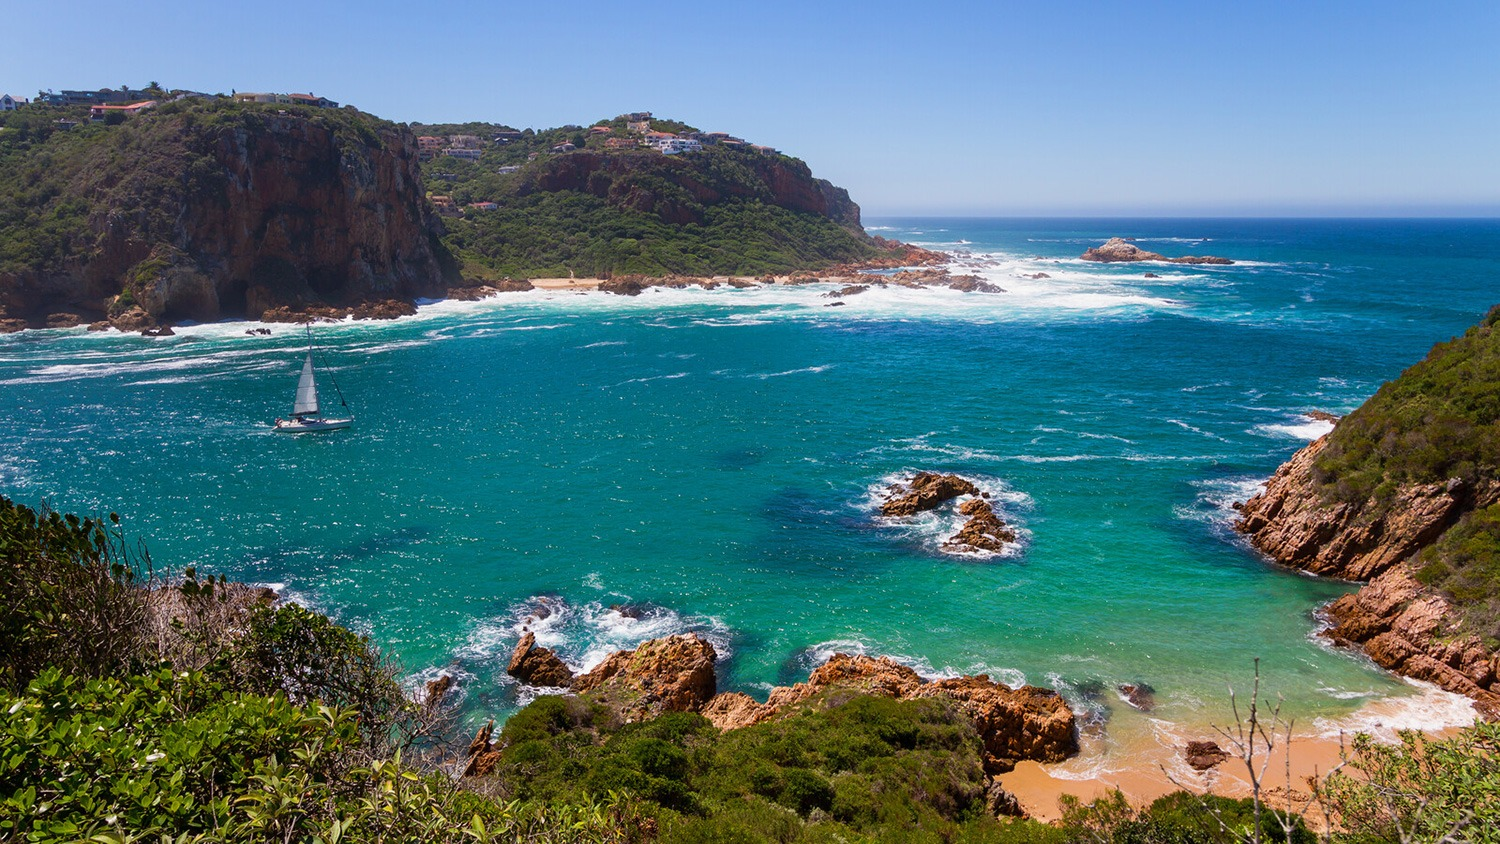 Seacrest-villa-self-catering-holiday-home-cottage-knysna-luxury-accommodation